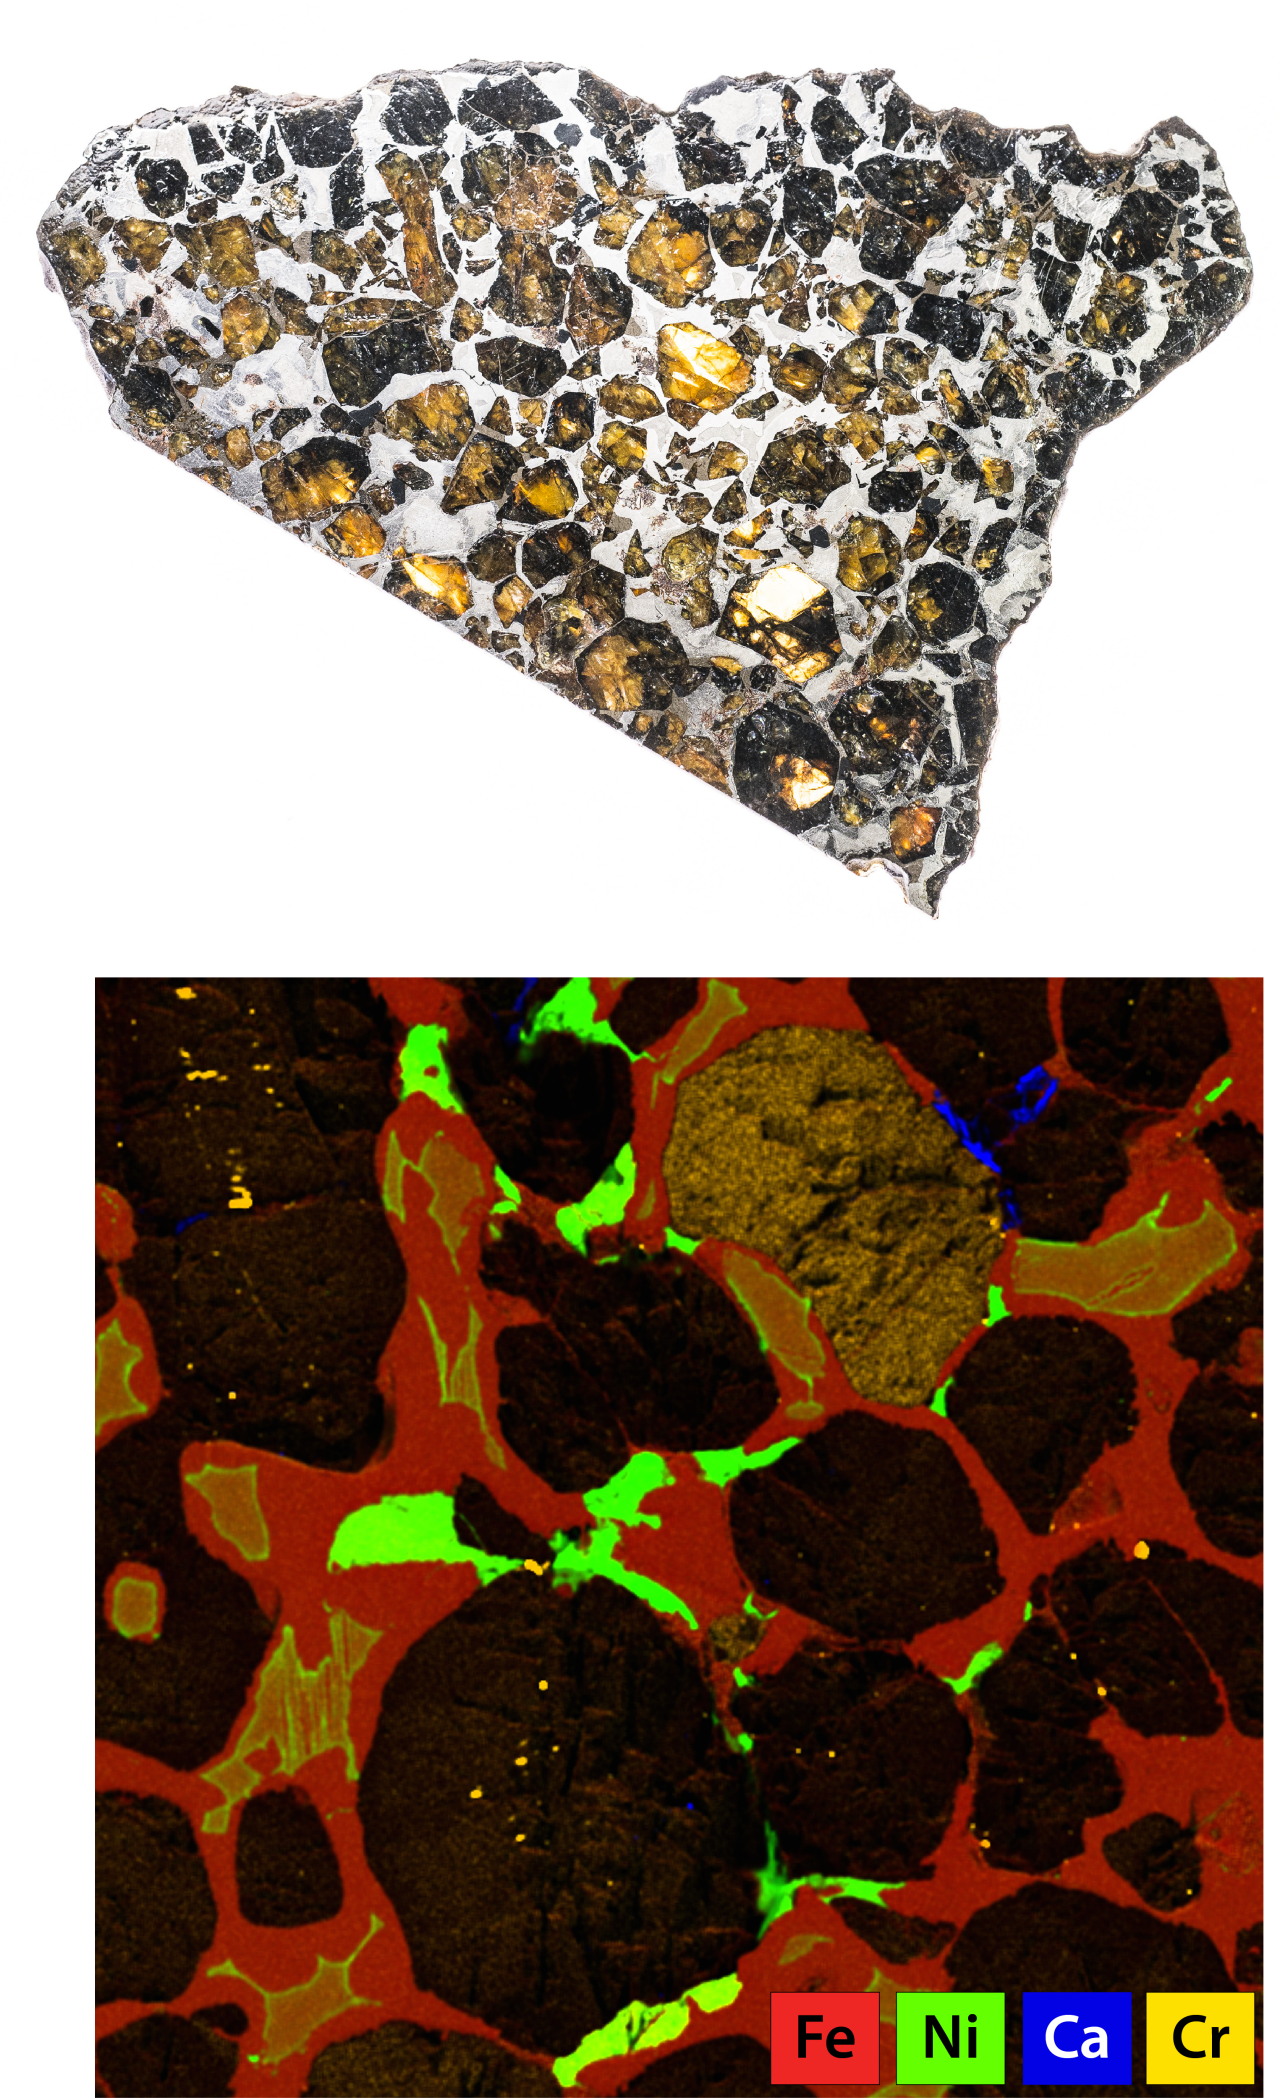 Polished surface of a pallasite